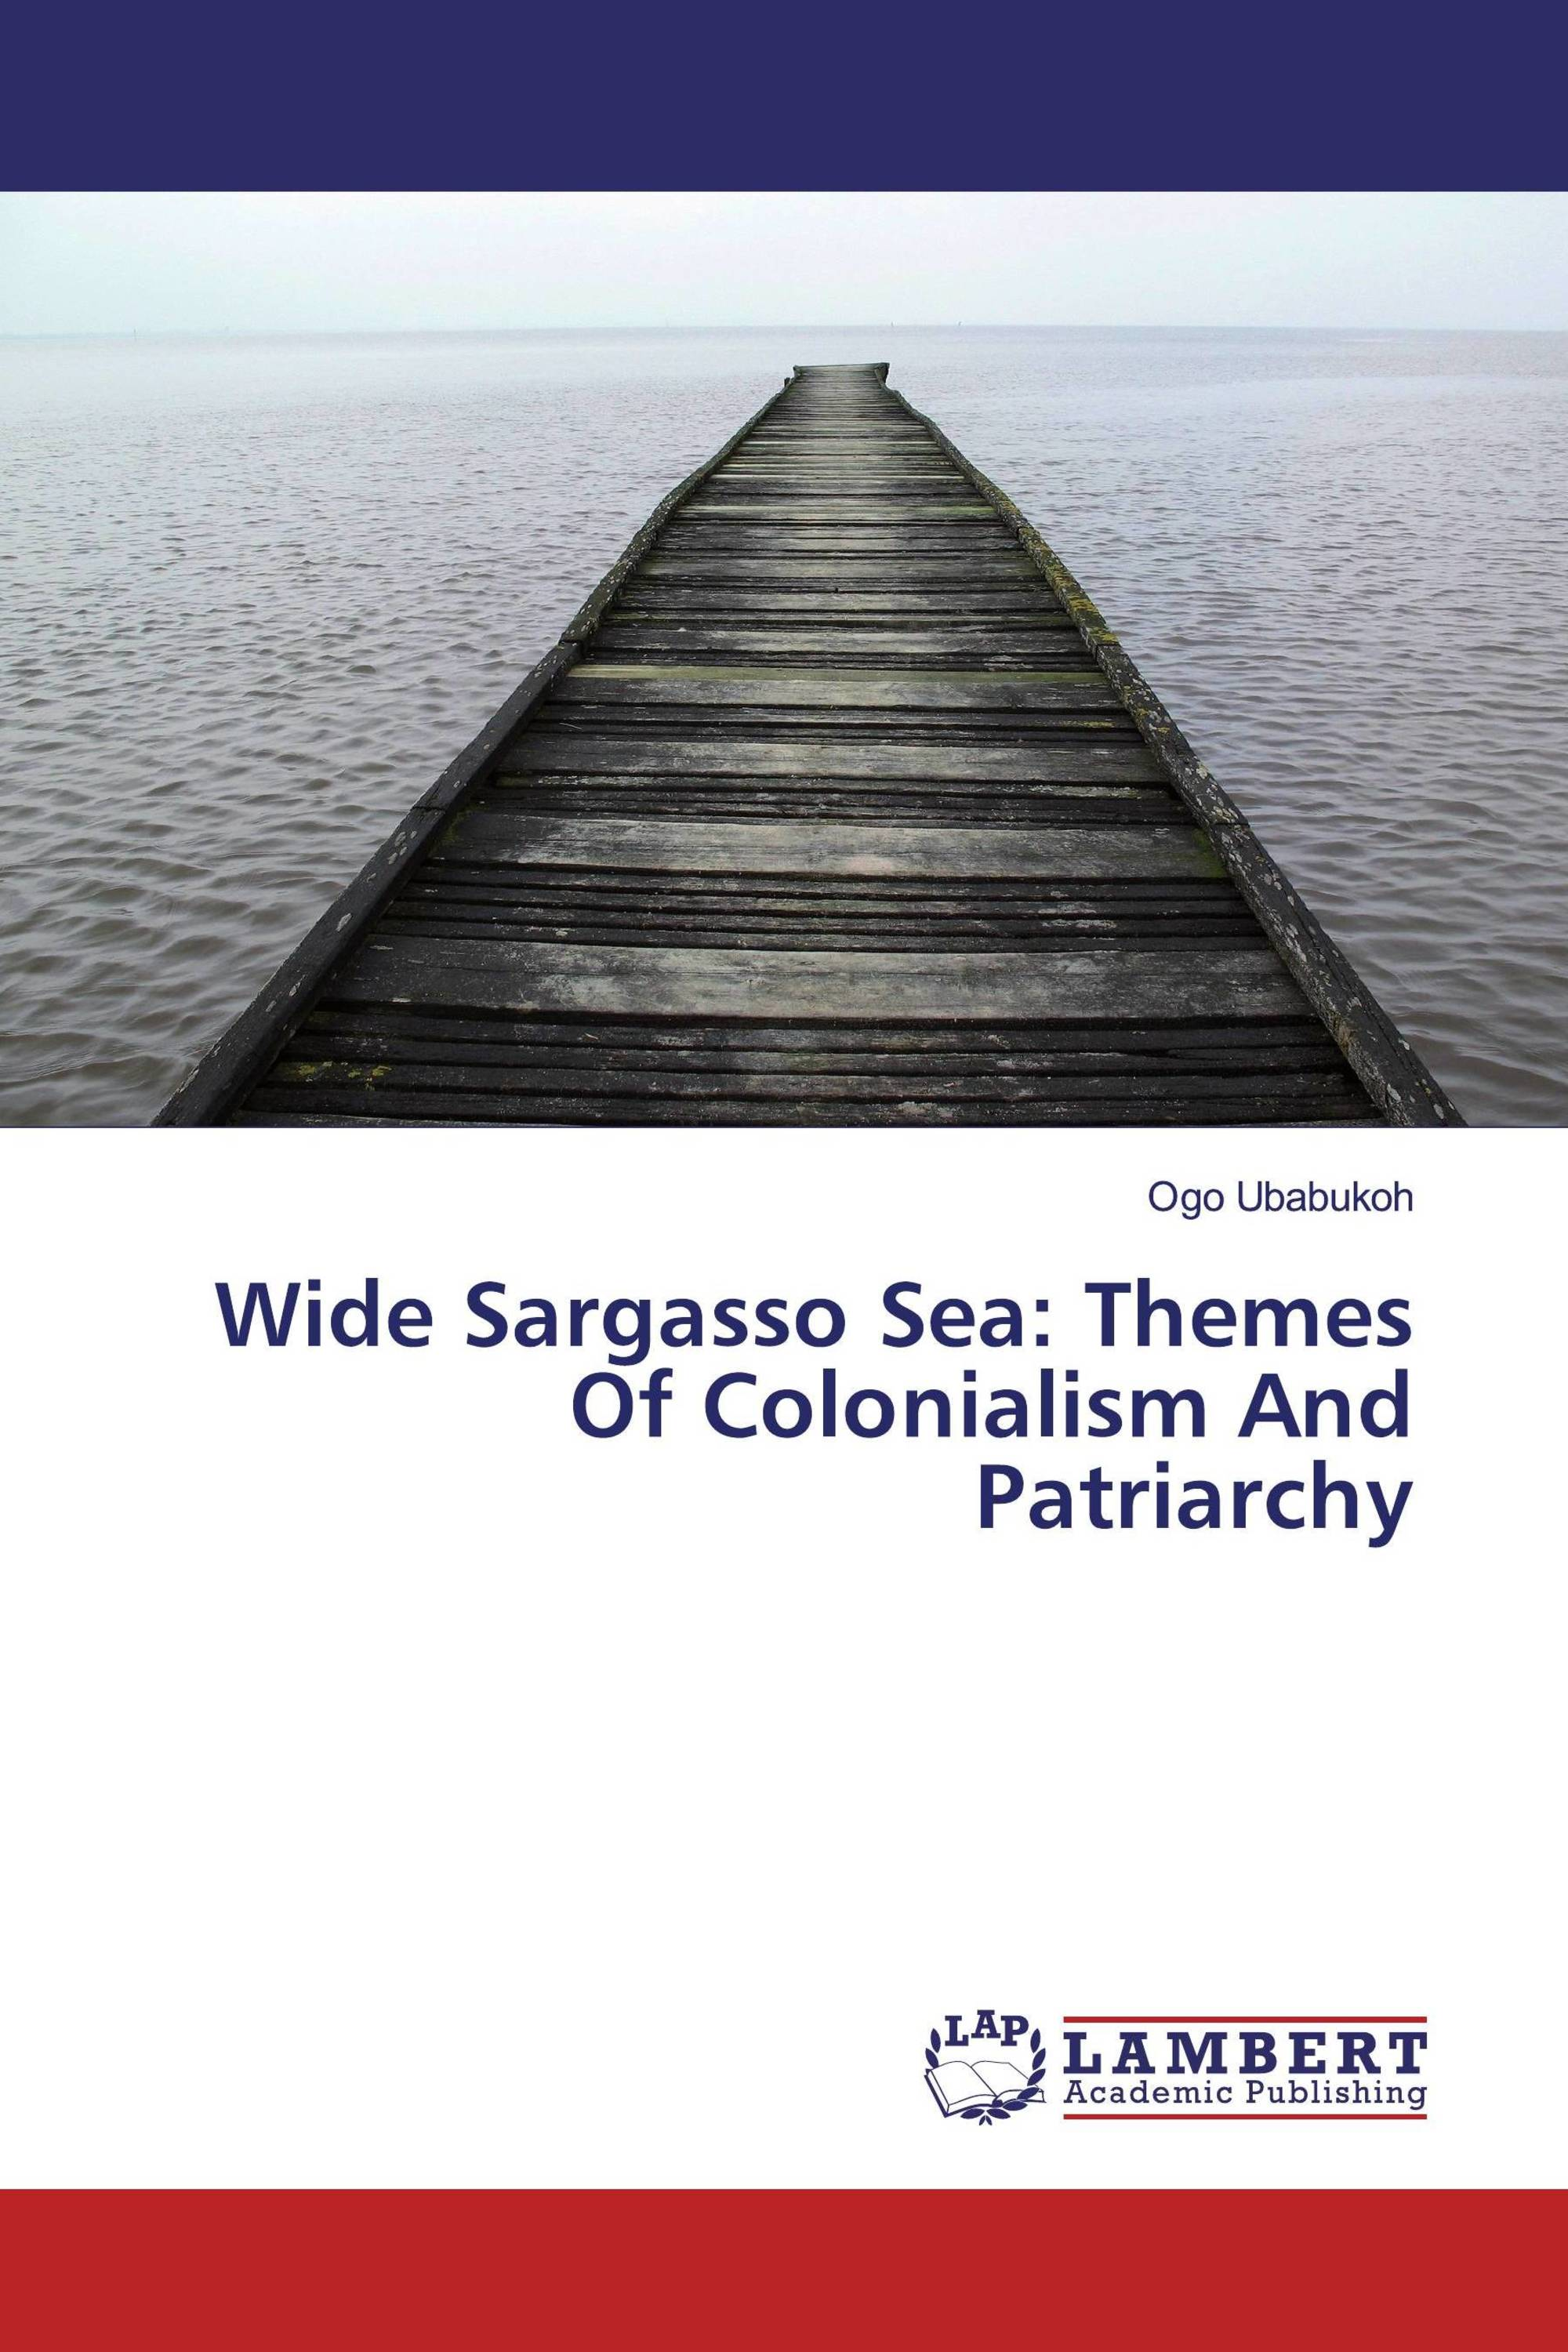 Wide Sargasso Sea: Themes Of Colonialism And Patriarchy